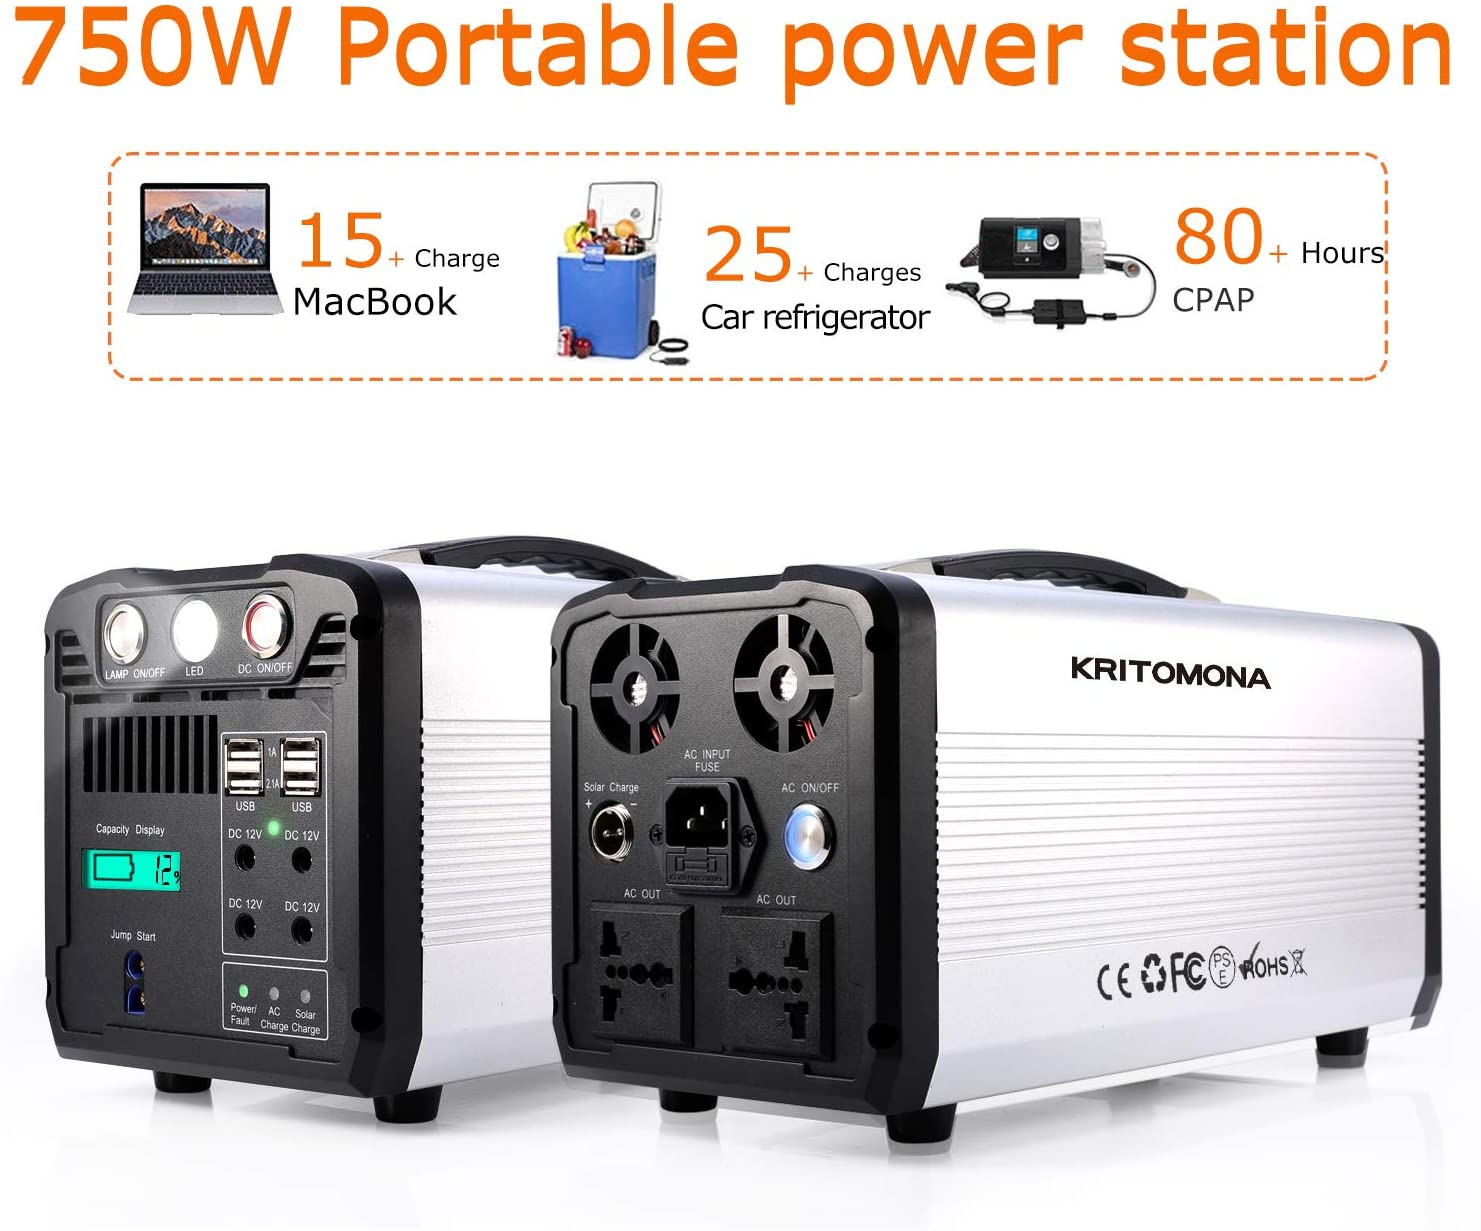 KRITOMONA Portable Power Station Explorer 750, 110V 750w 1000W Peak UPS Pure Sine Wave AC Outlet, 4 USB, 12V 4DC, LED Flashlight,Solar Generator for Outdoors CPAP Camping Travel Hunting Emergency